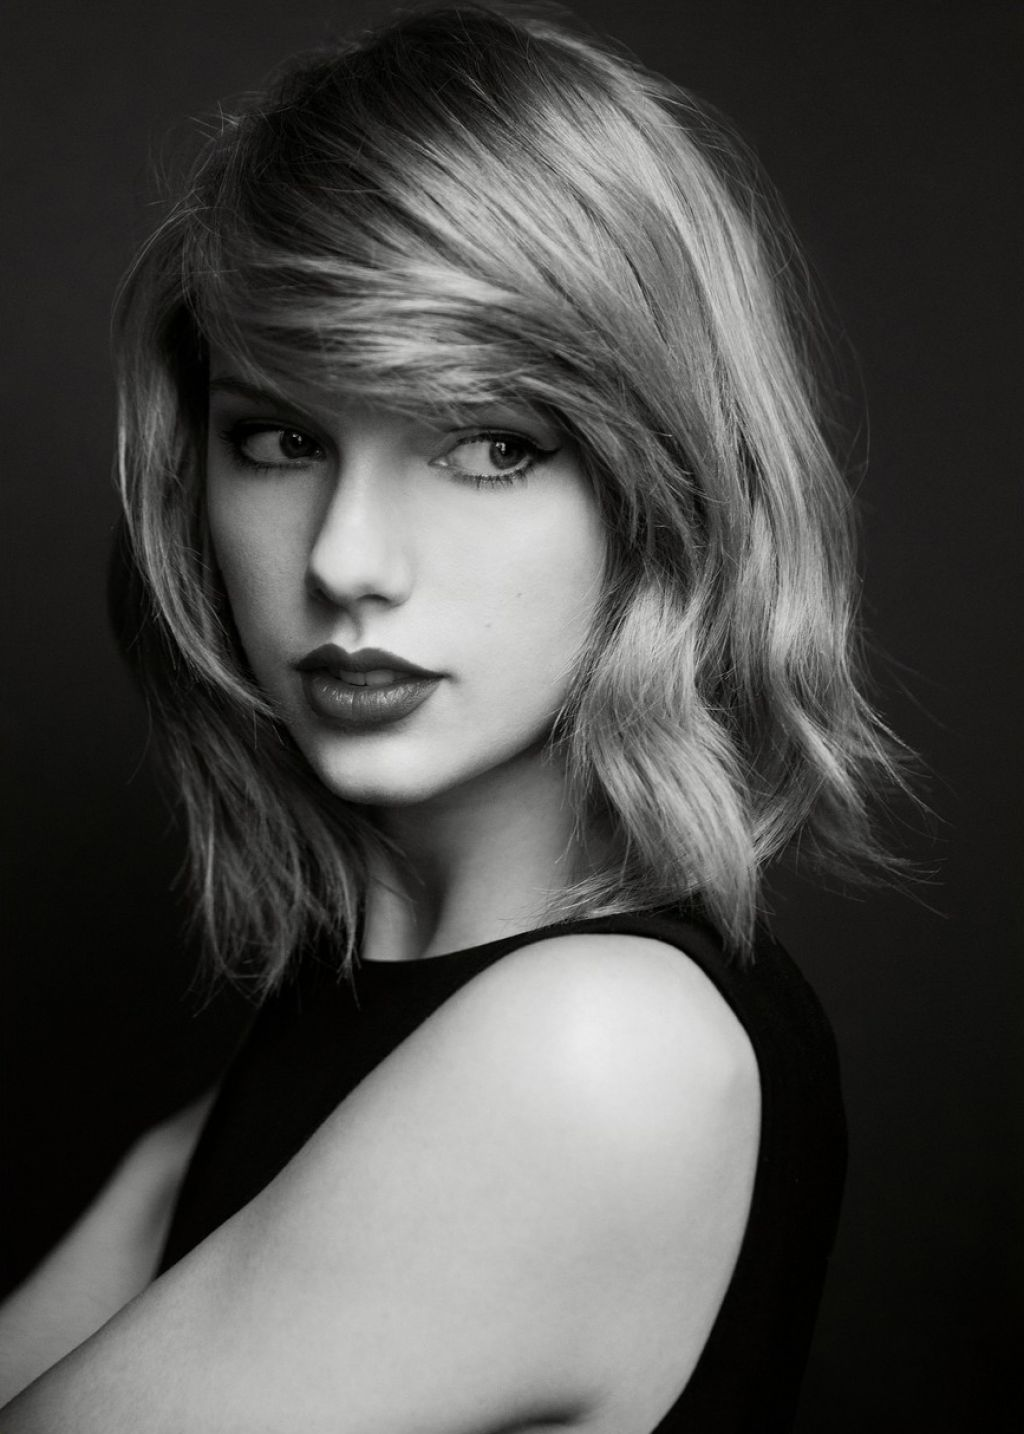 Taylor Swift Photoshoot (2014)